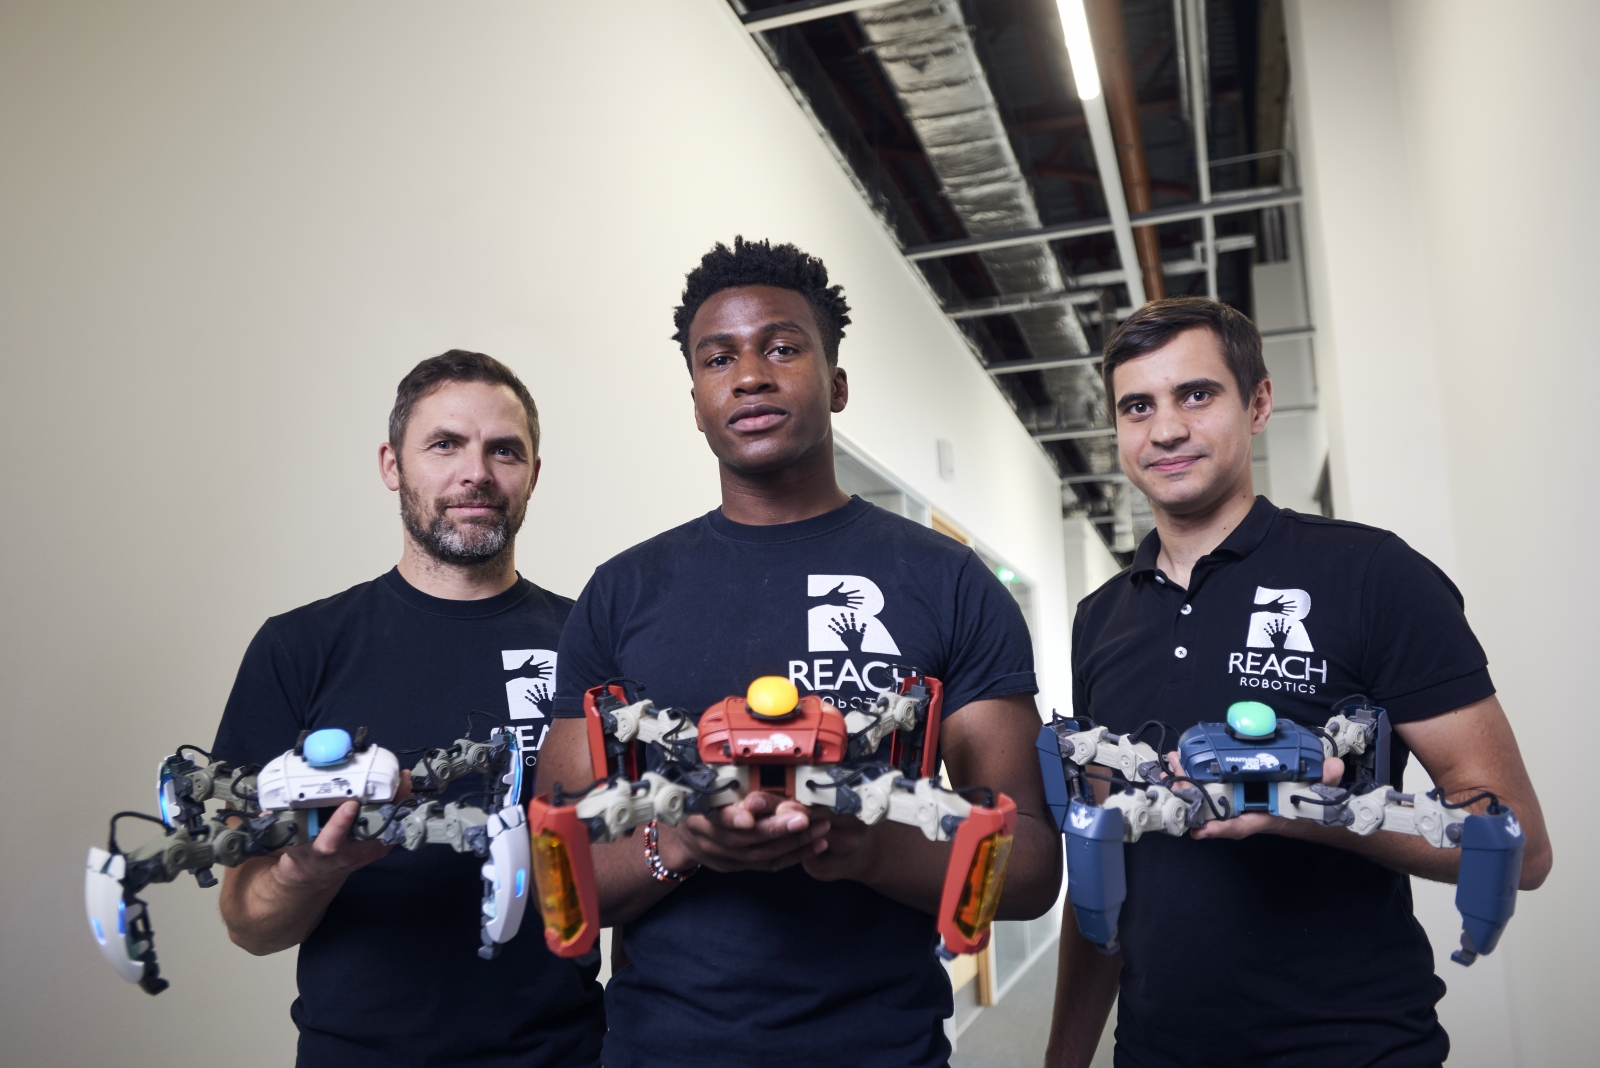 Reach Robotics founders